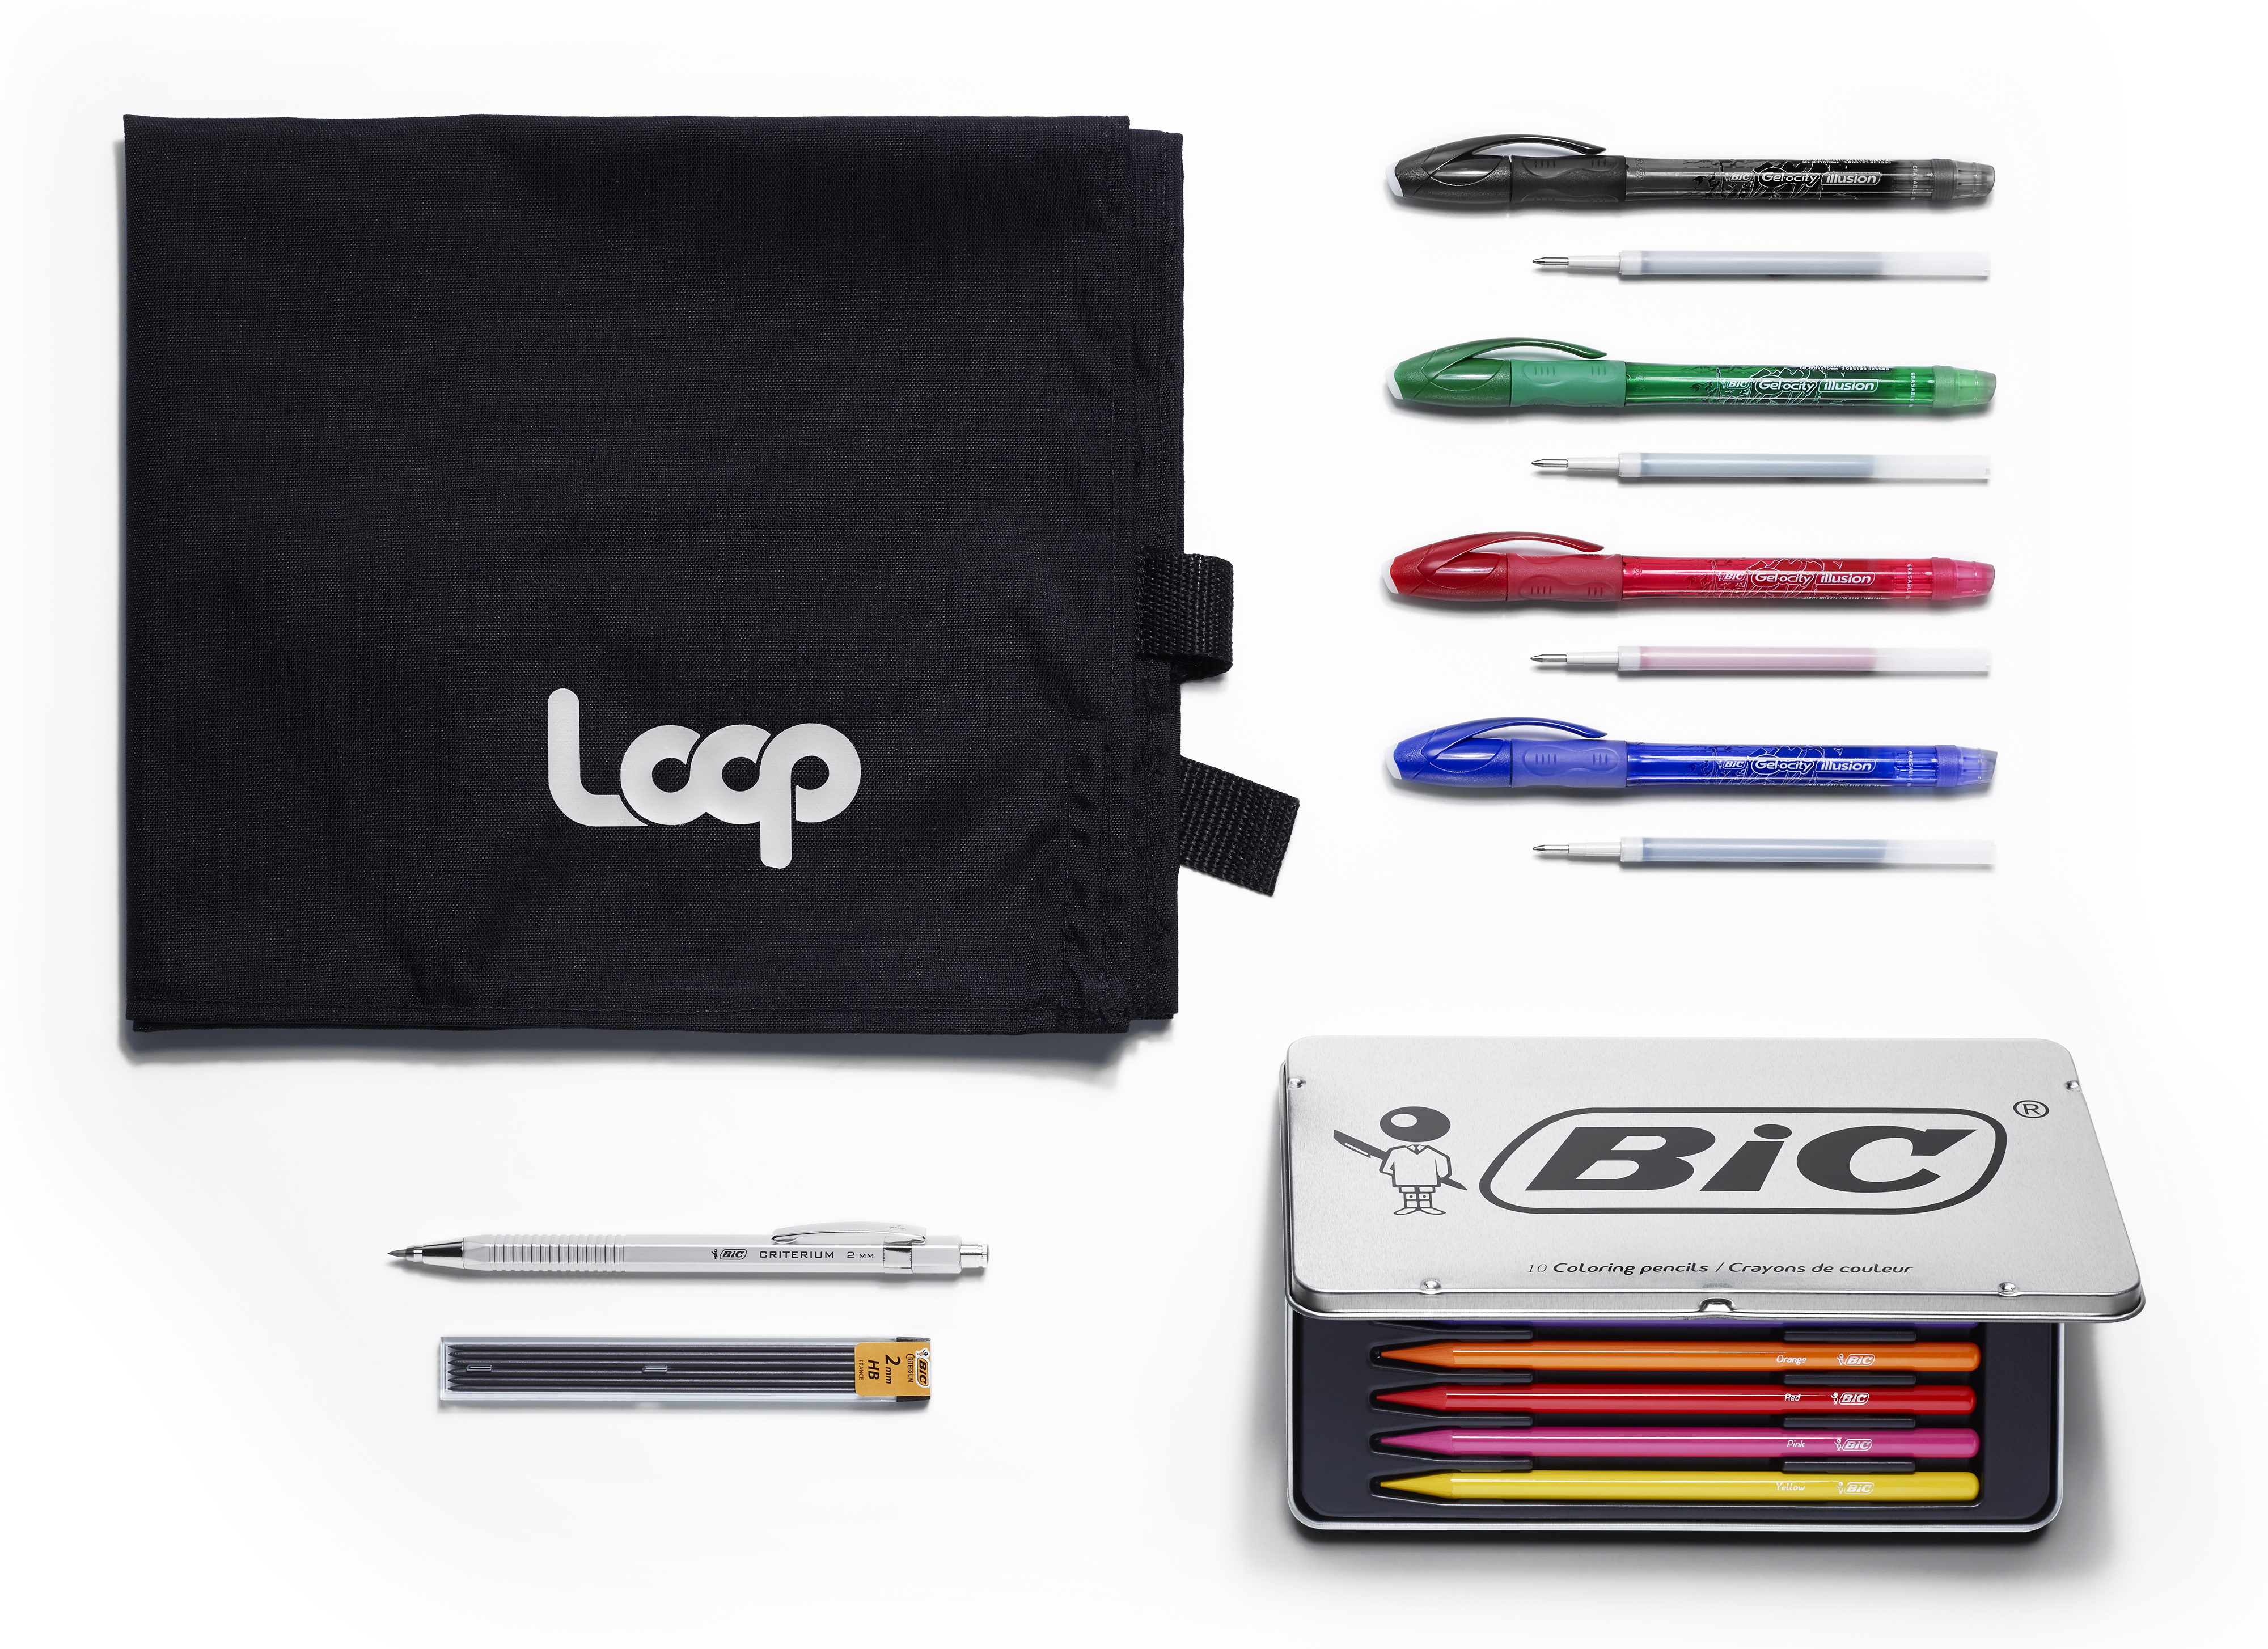 loop products